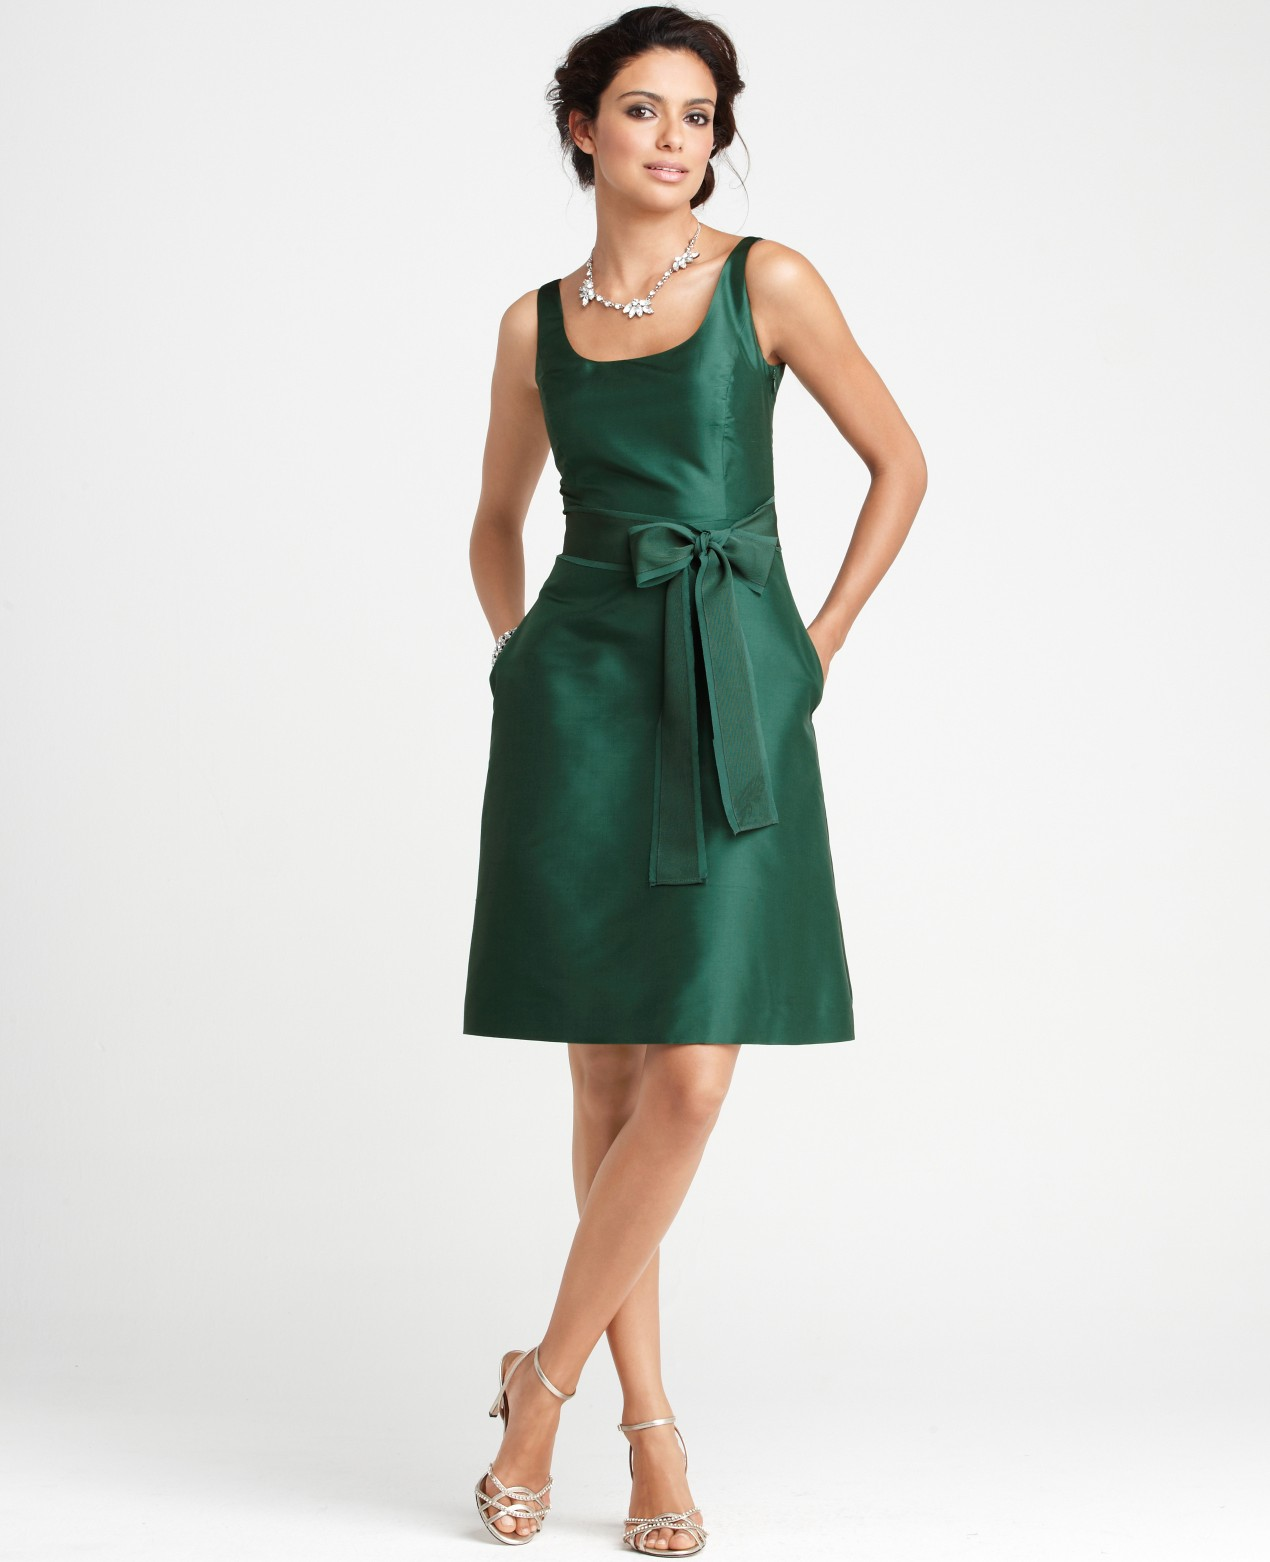 f31f5b28c9 Ann Taylor Silk Dupioni Scoop Neck Bridesmaid Dress in Green - Lyst